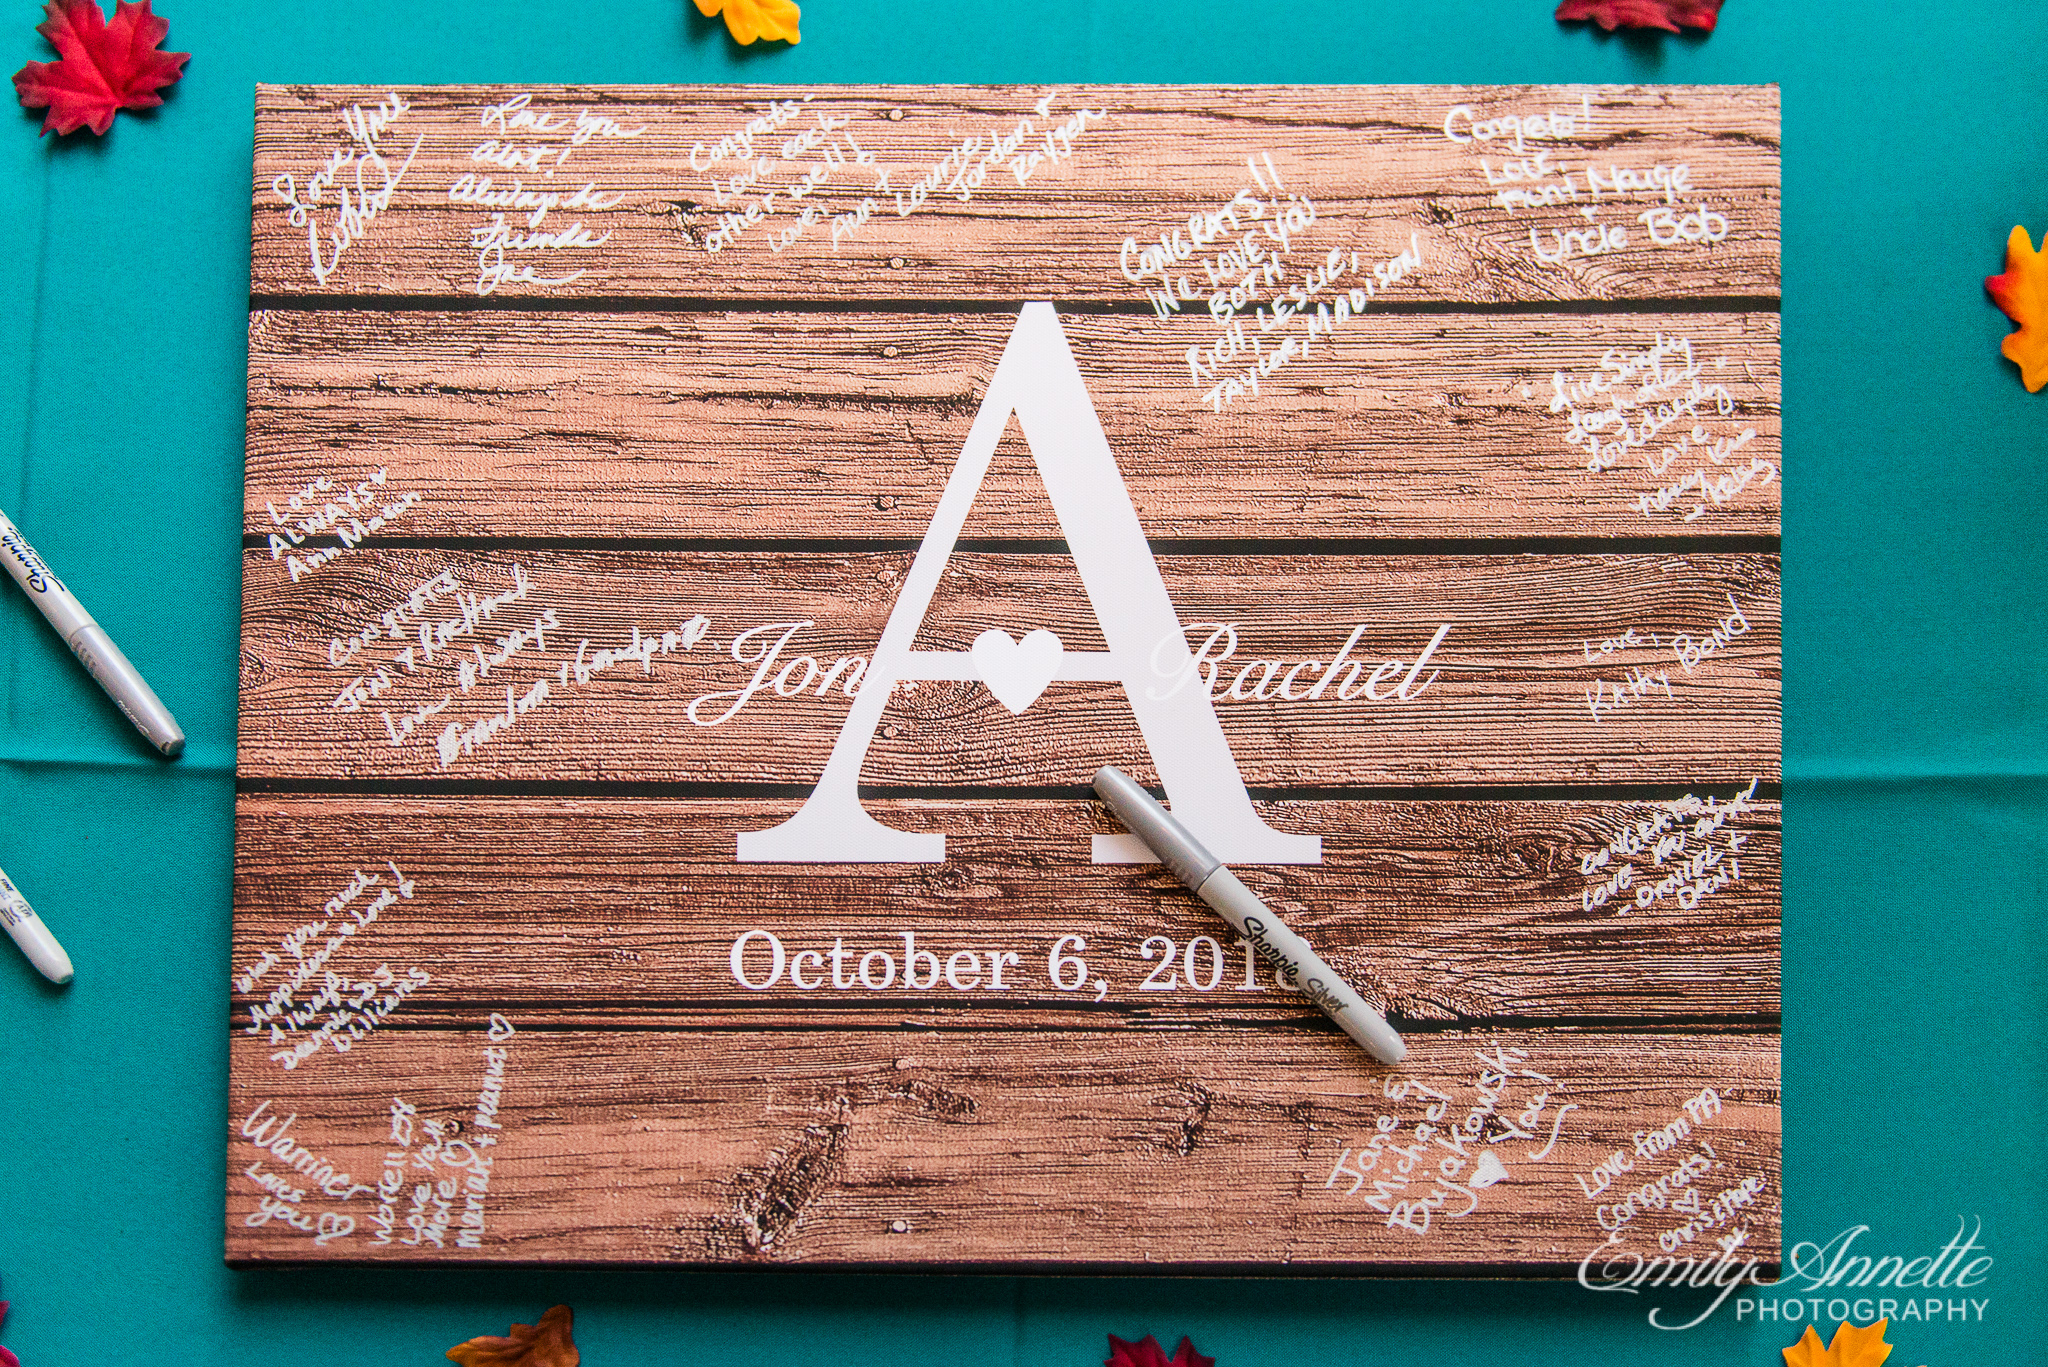 A wooden monogrammed signing board being used as a guest book for a country wedding reception at Amber Grove near Richmond, Virginia